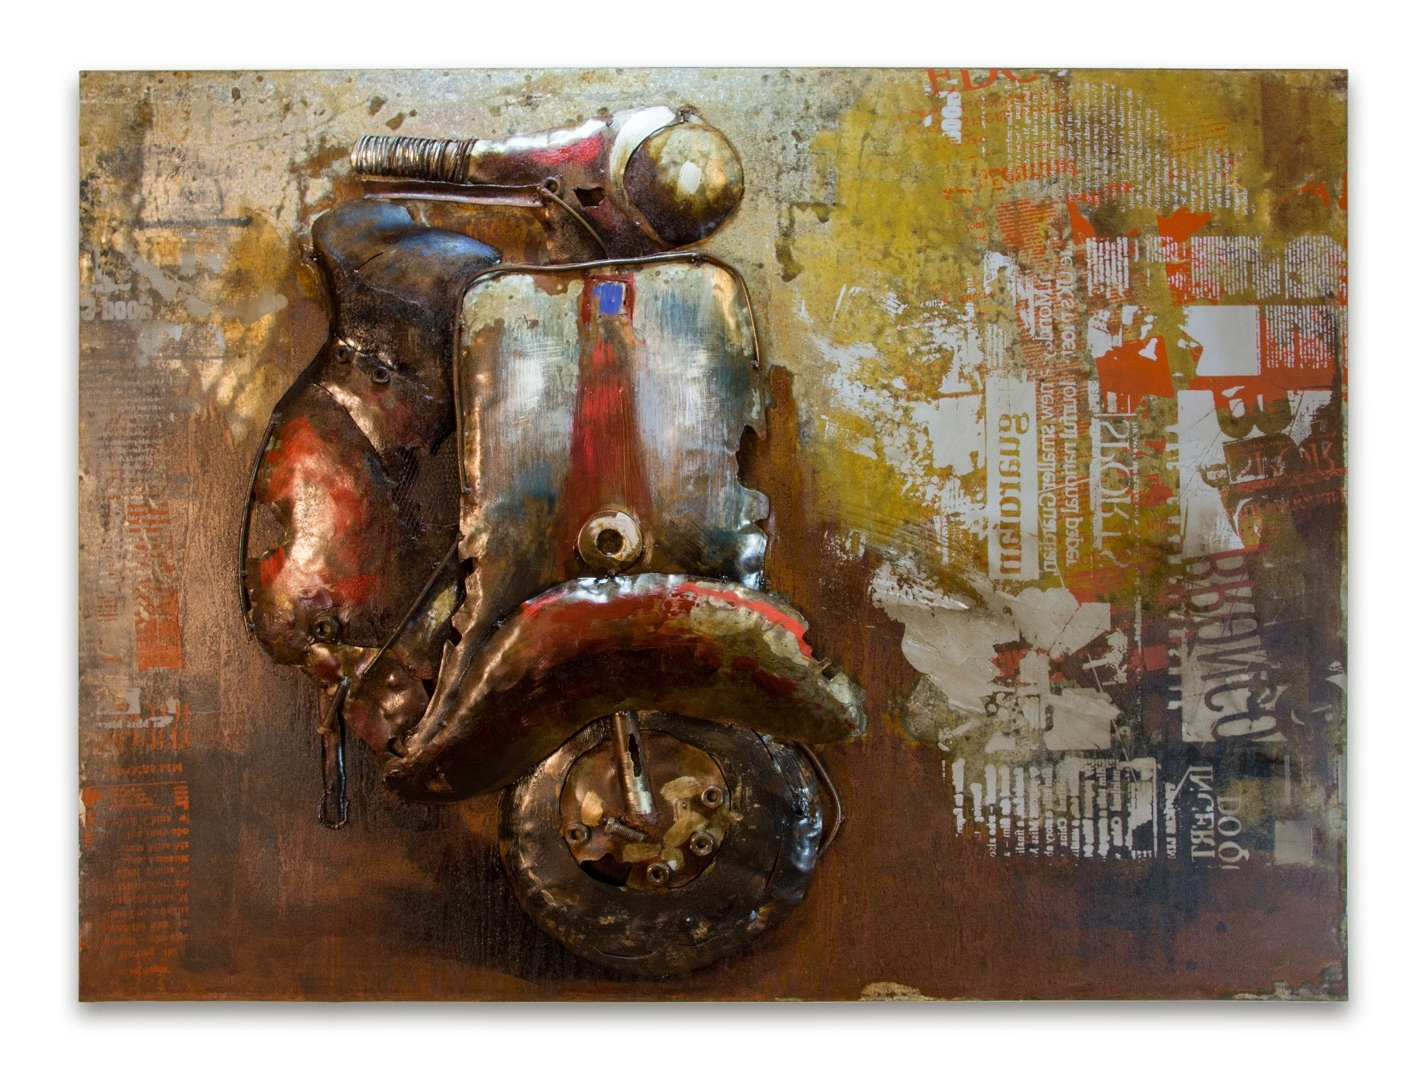 Italian Metal Wall Art Within Latest Wall Art Decor: Scooter Crafted Italian Metal Wall Art Handmade (View 2 of 15)